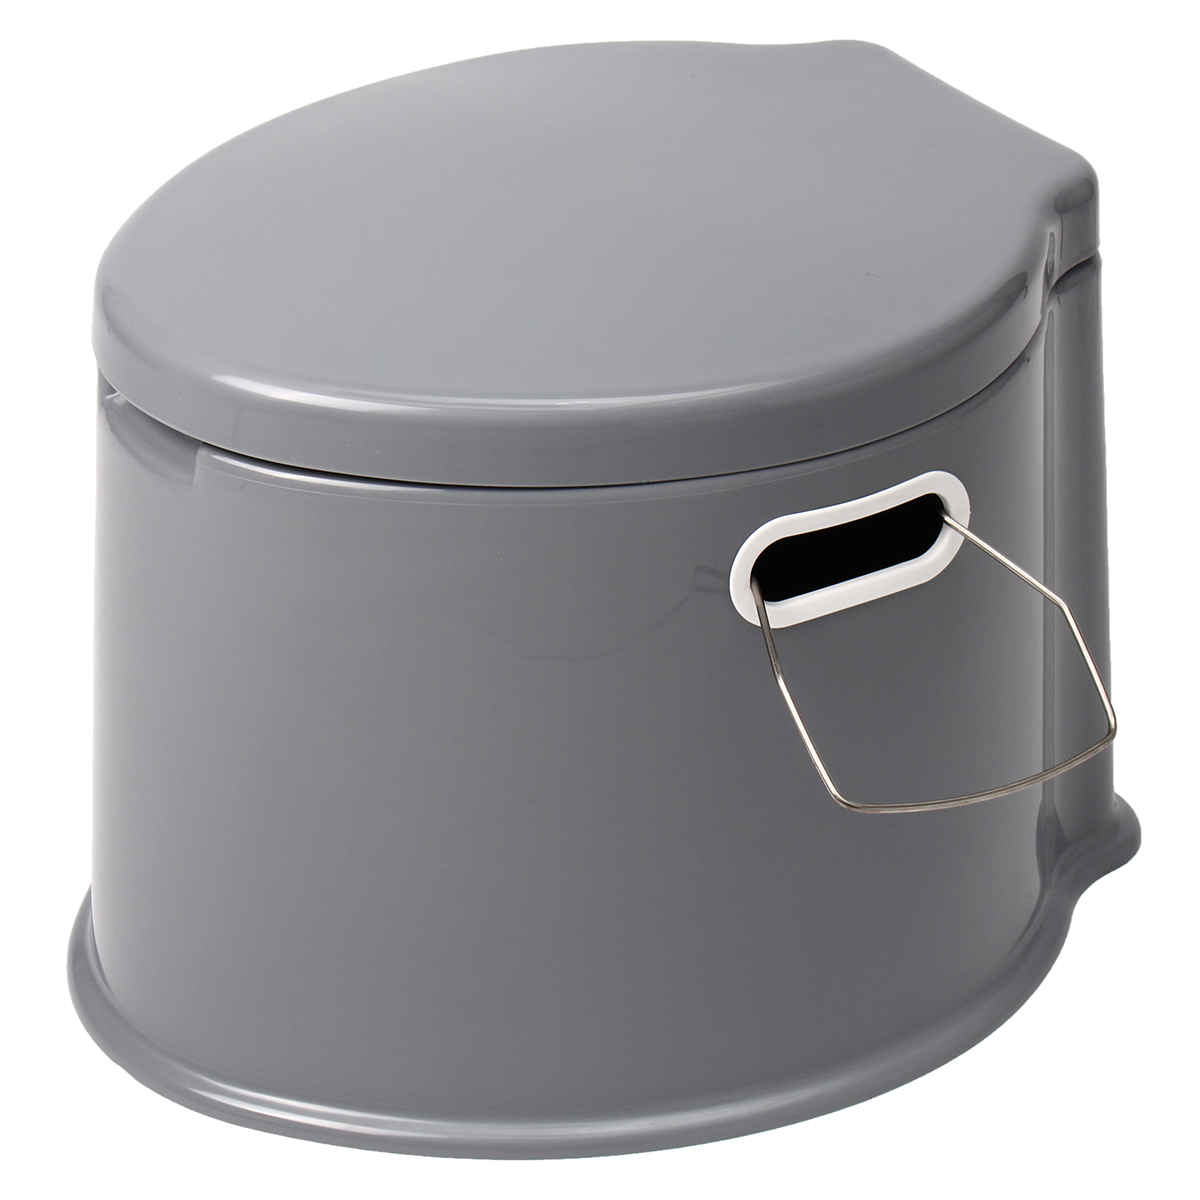 Meigar Large Portable Toilet Potty Bedside Commode for Adults The Elderly Travel Camping Hiking Outdoor Indoor